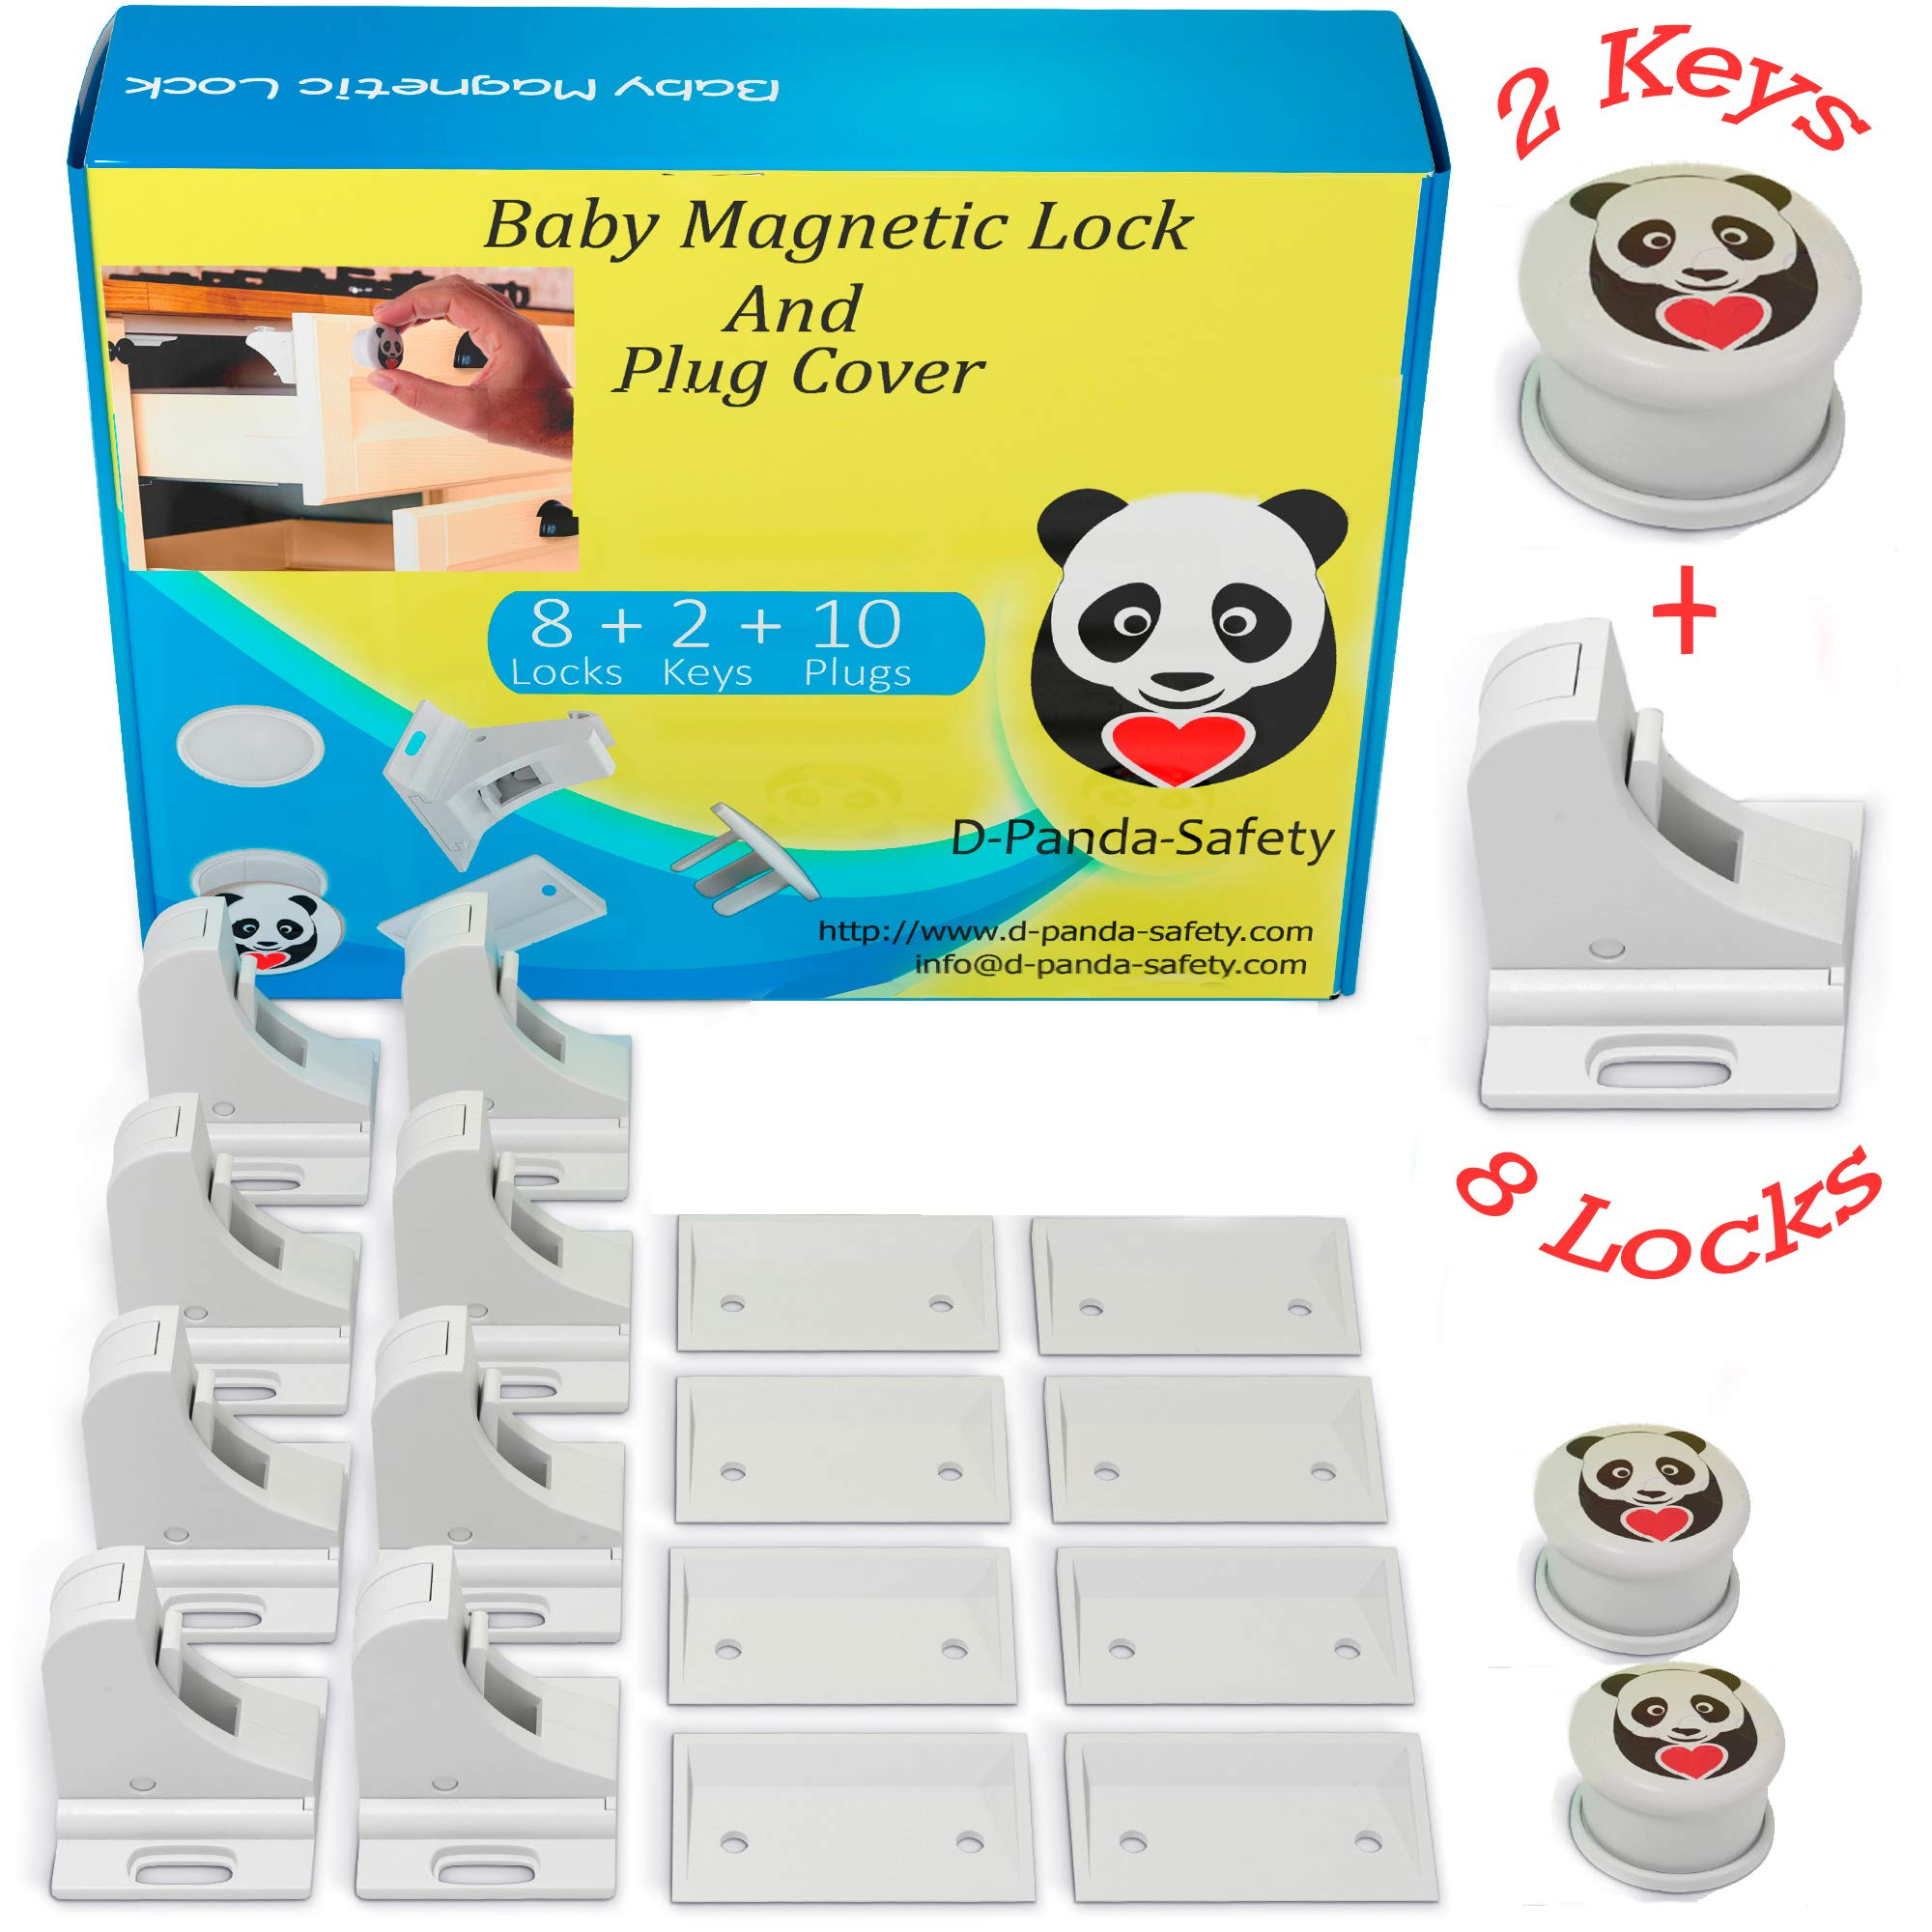 Child Safety Magnetic Cabinet Locks - Invisible Baby Proof Latch Set 8 Locks & 2 Keys Heavy Duty Locking System for Proofing Cabinets Drawers Doors Kitchen with 3M Adhesive (Tools aren't Required) by D-Panda-Safety (Image #9)